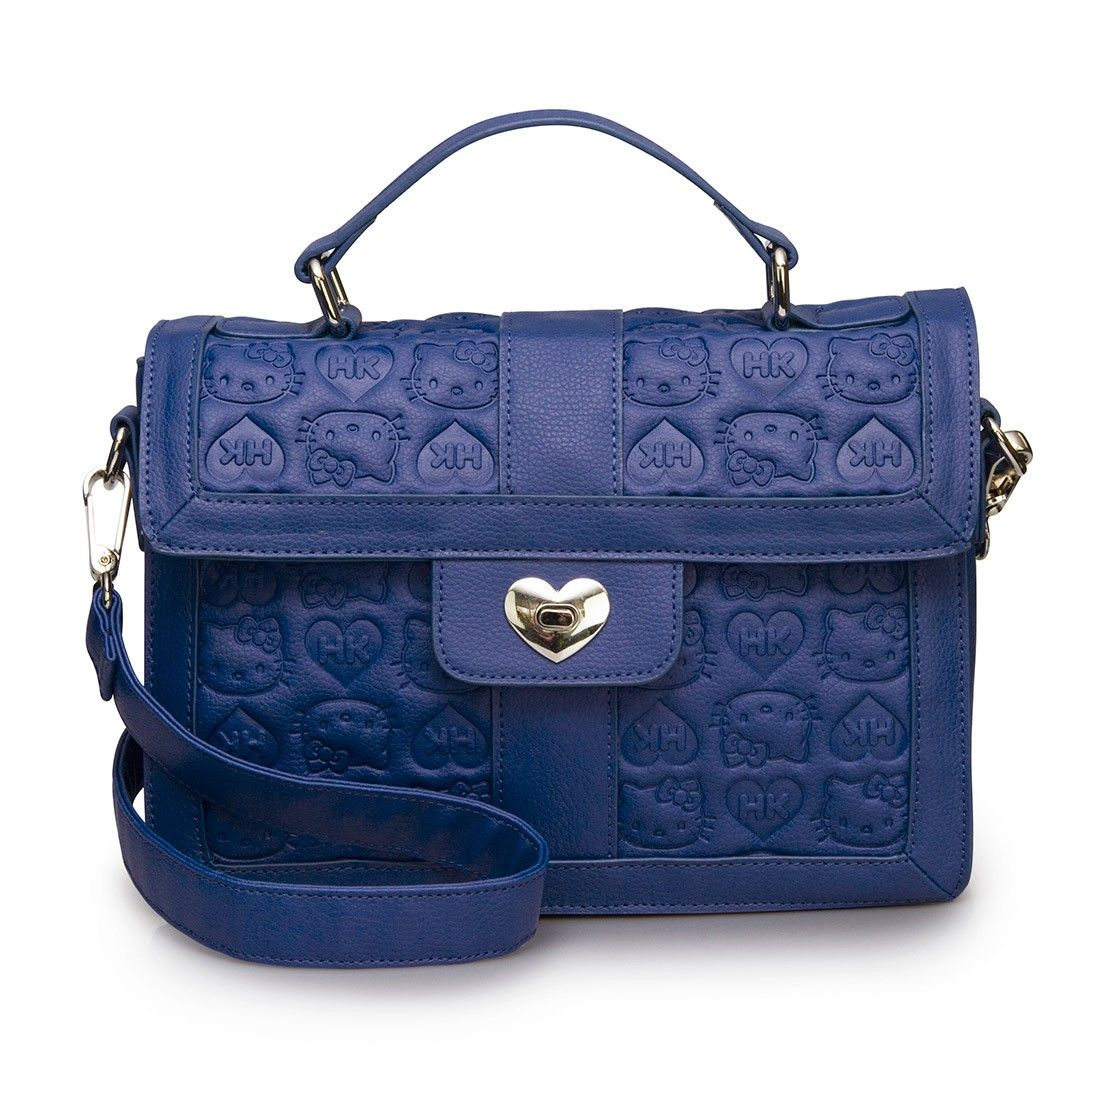 d41cfa686c Hello Kitty Blue Embossed Satchel With Heart Lock - Bags - Whats New ...